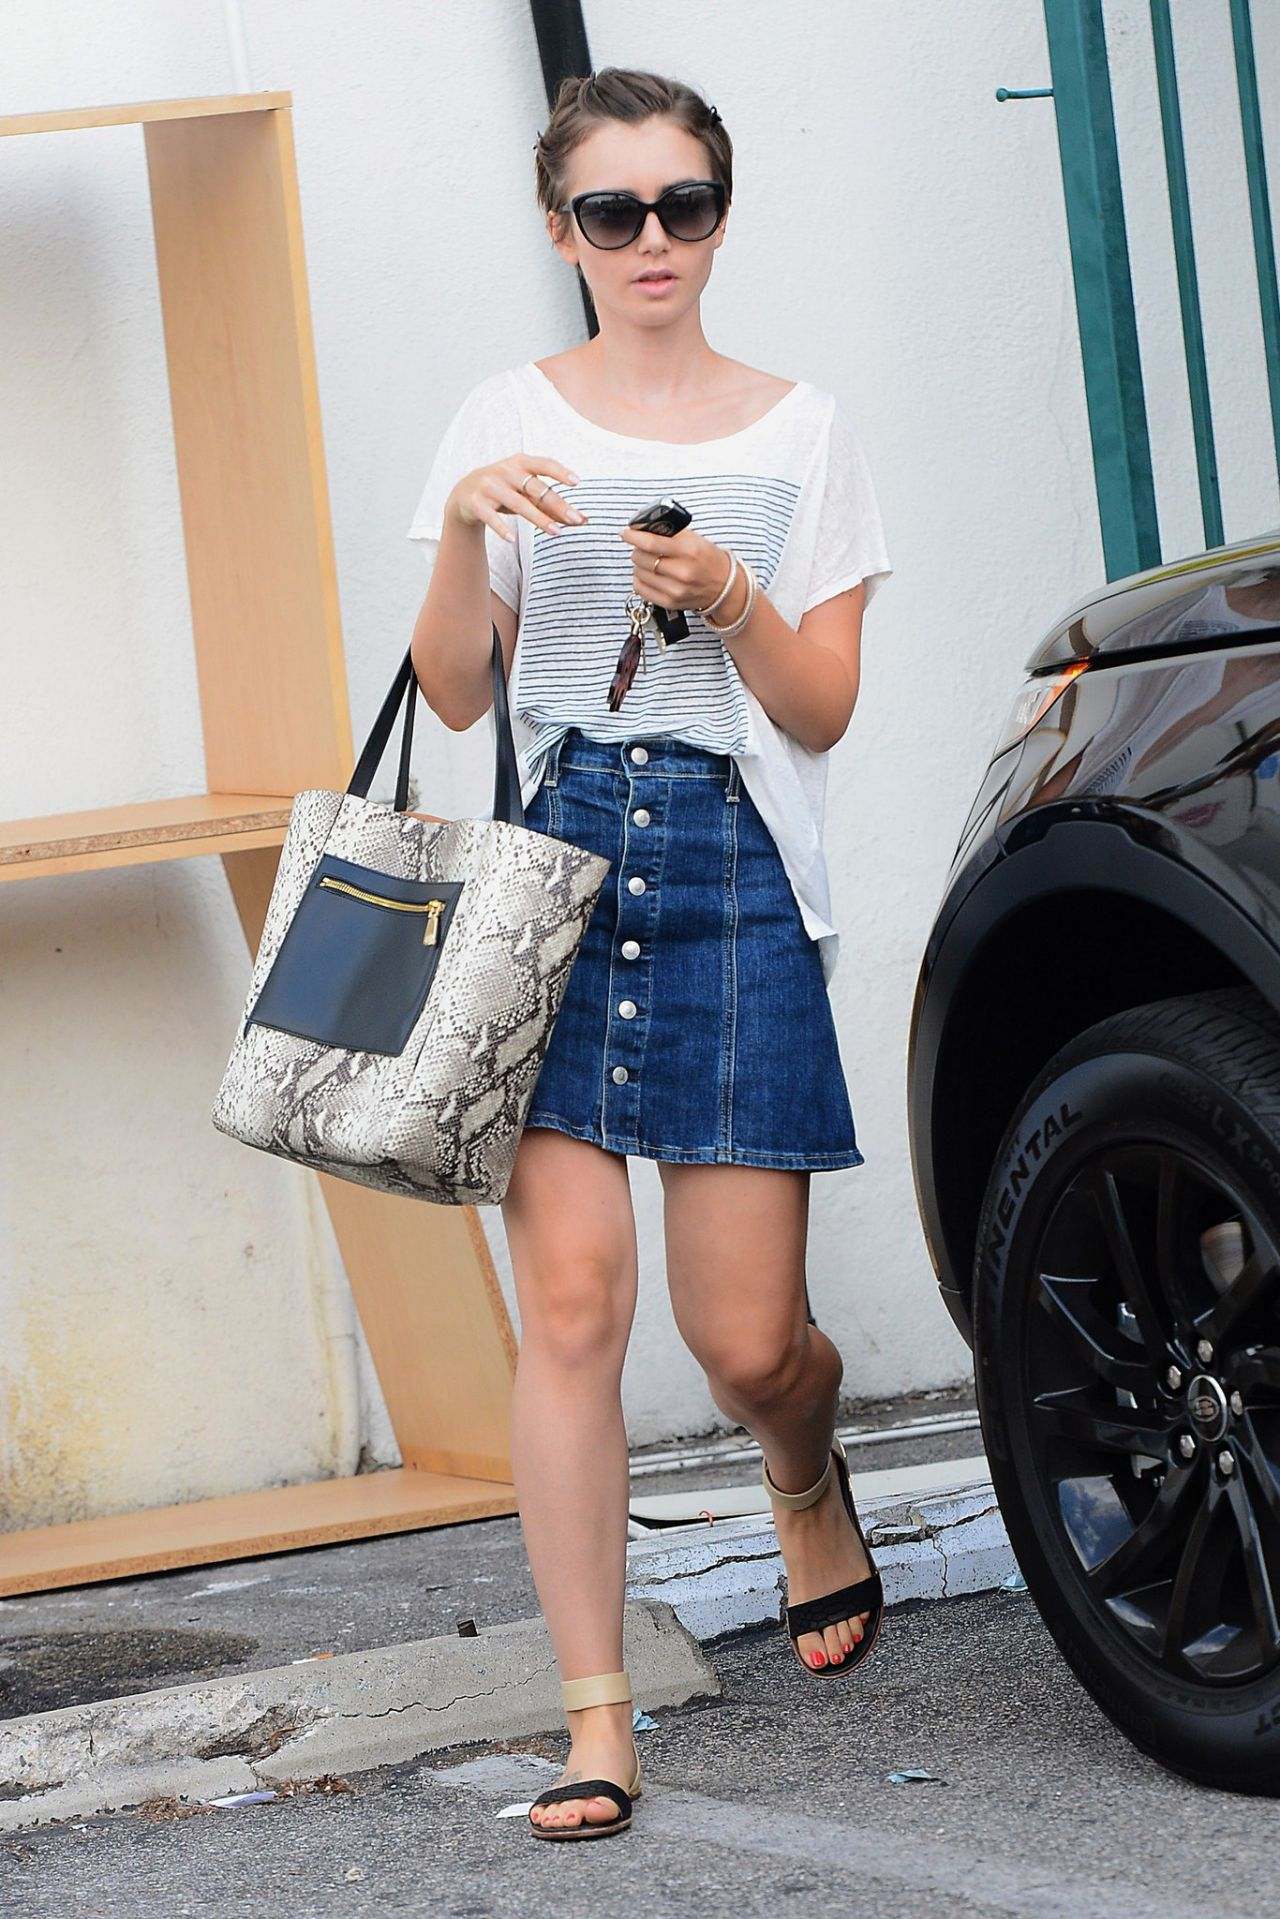 Lily Collins In Jeans Skirt Out In Beverly Hills August